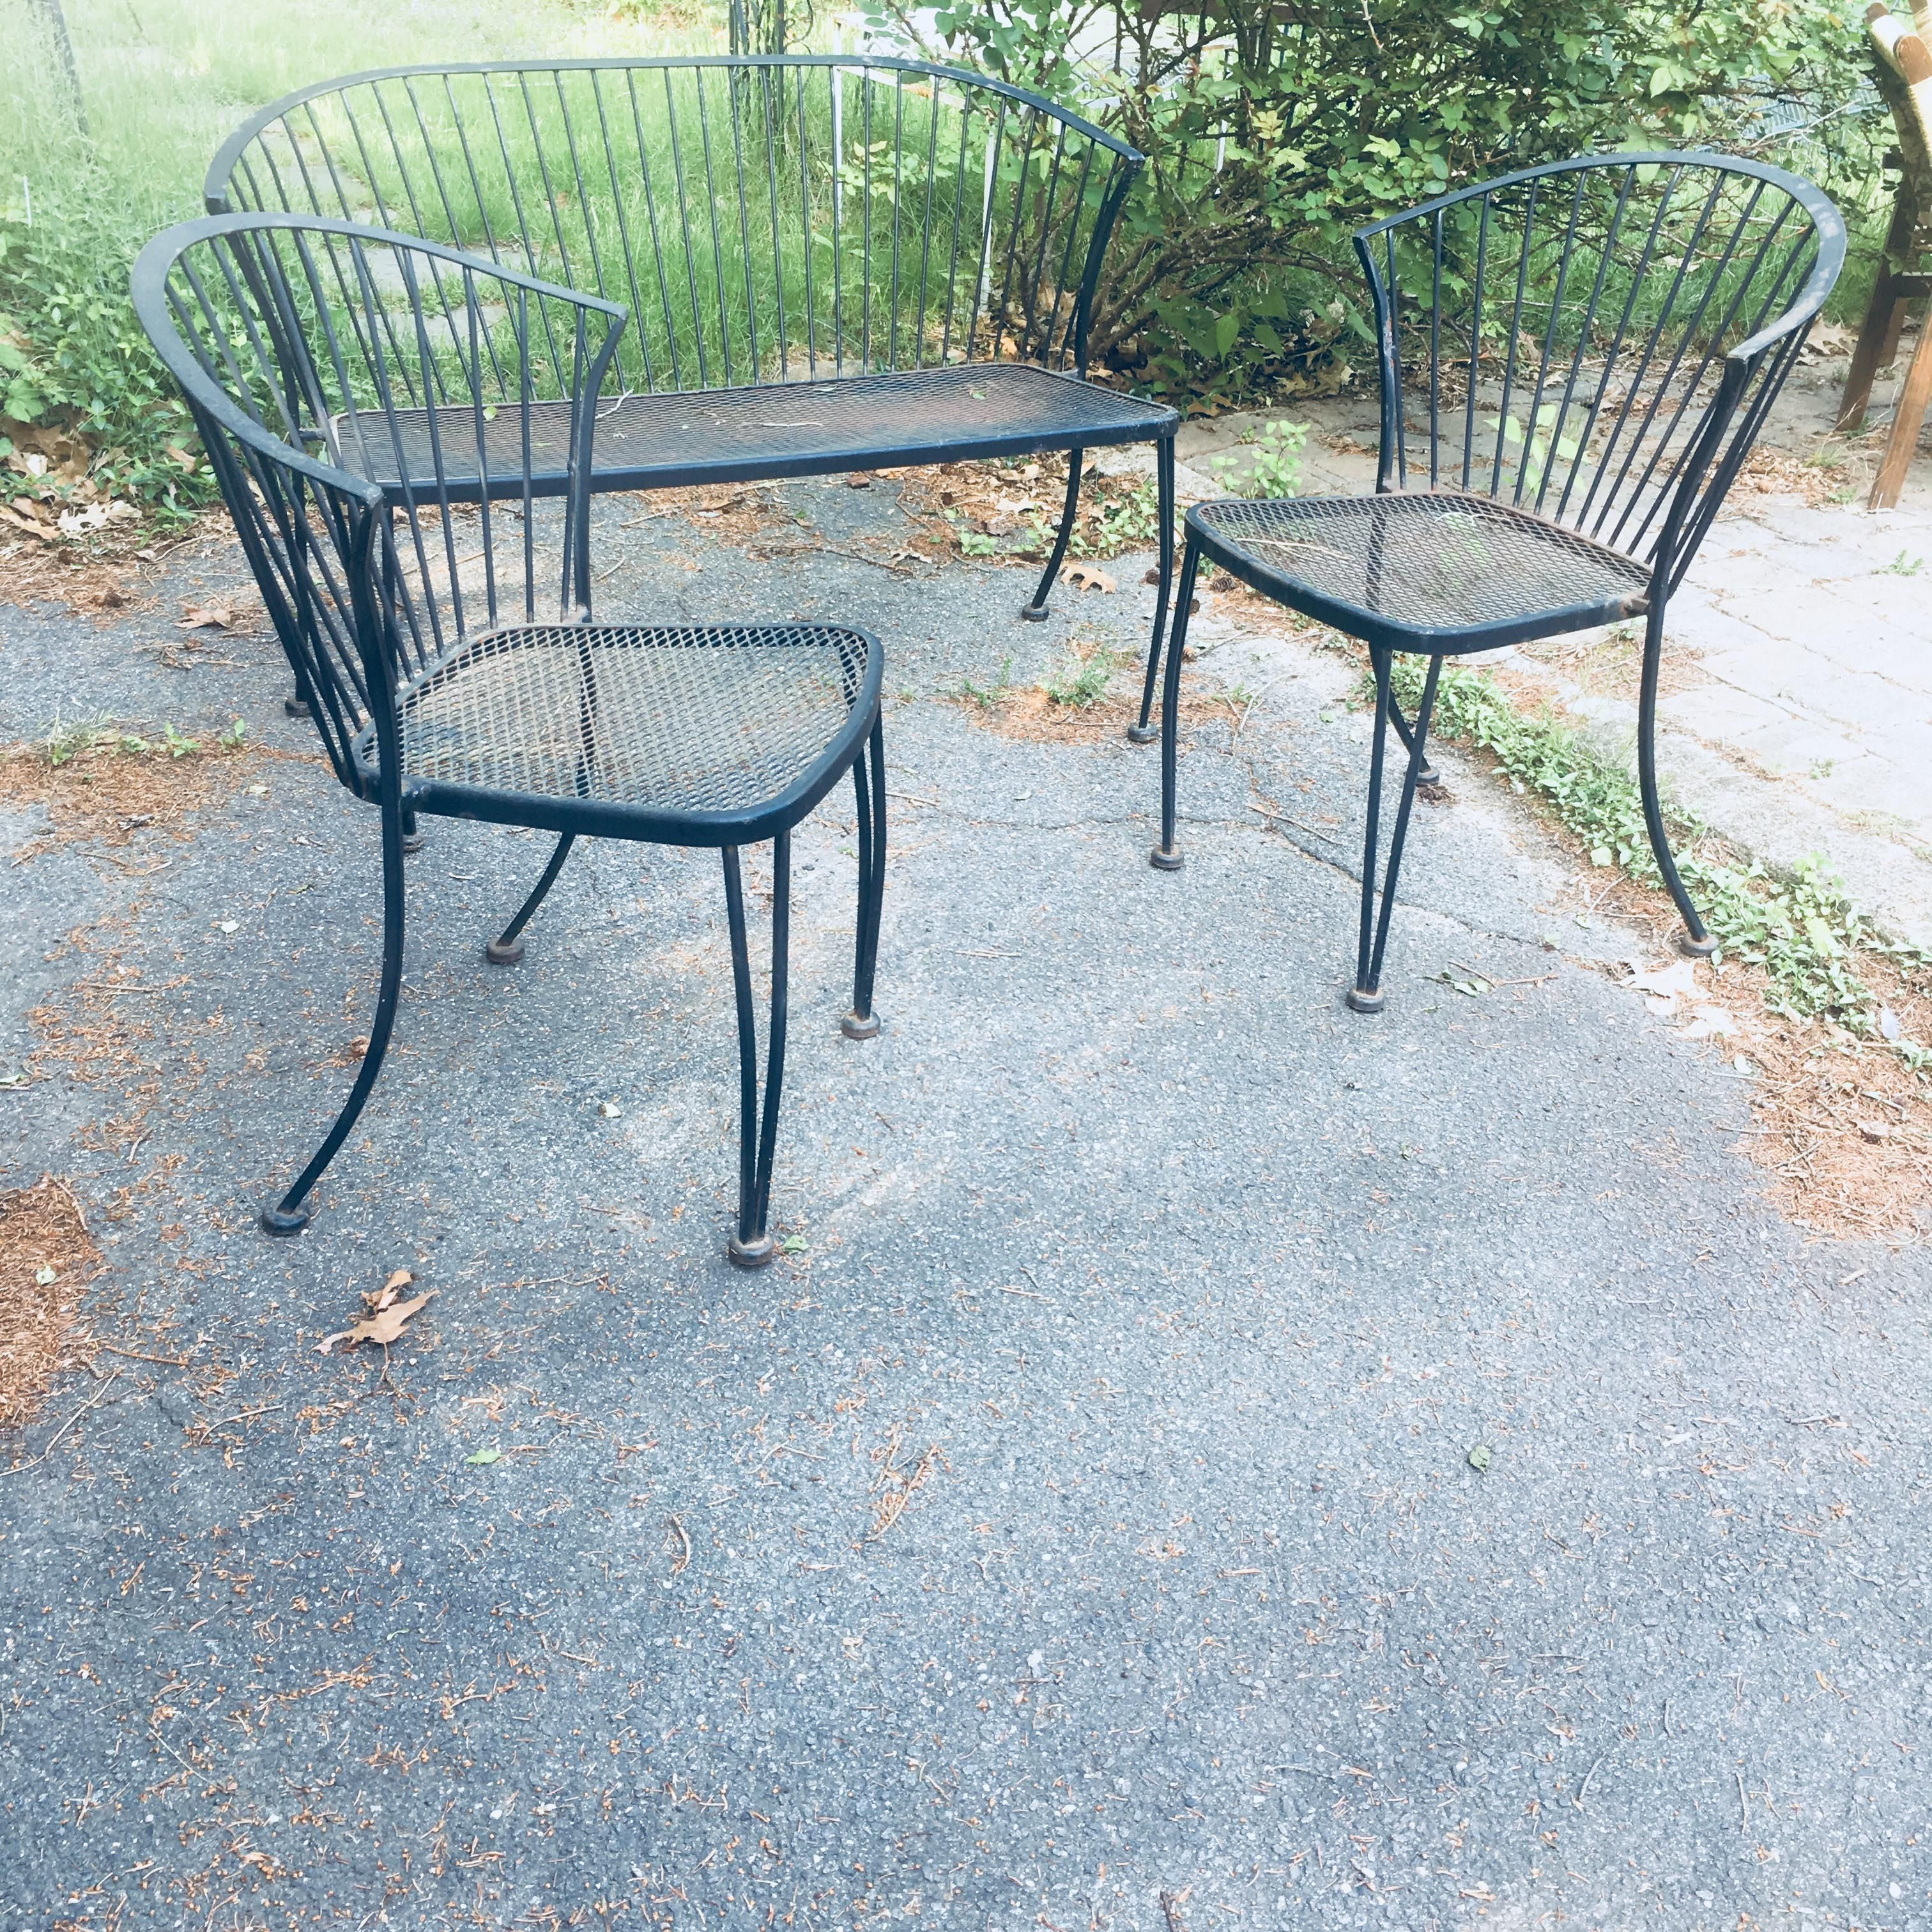 Download Wallpaper Wrought Iron Patio Furniture Lowes